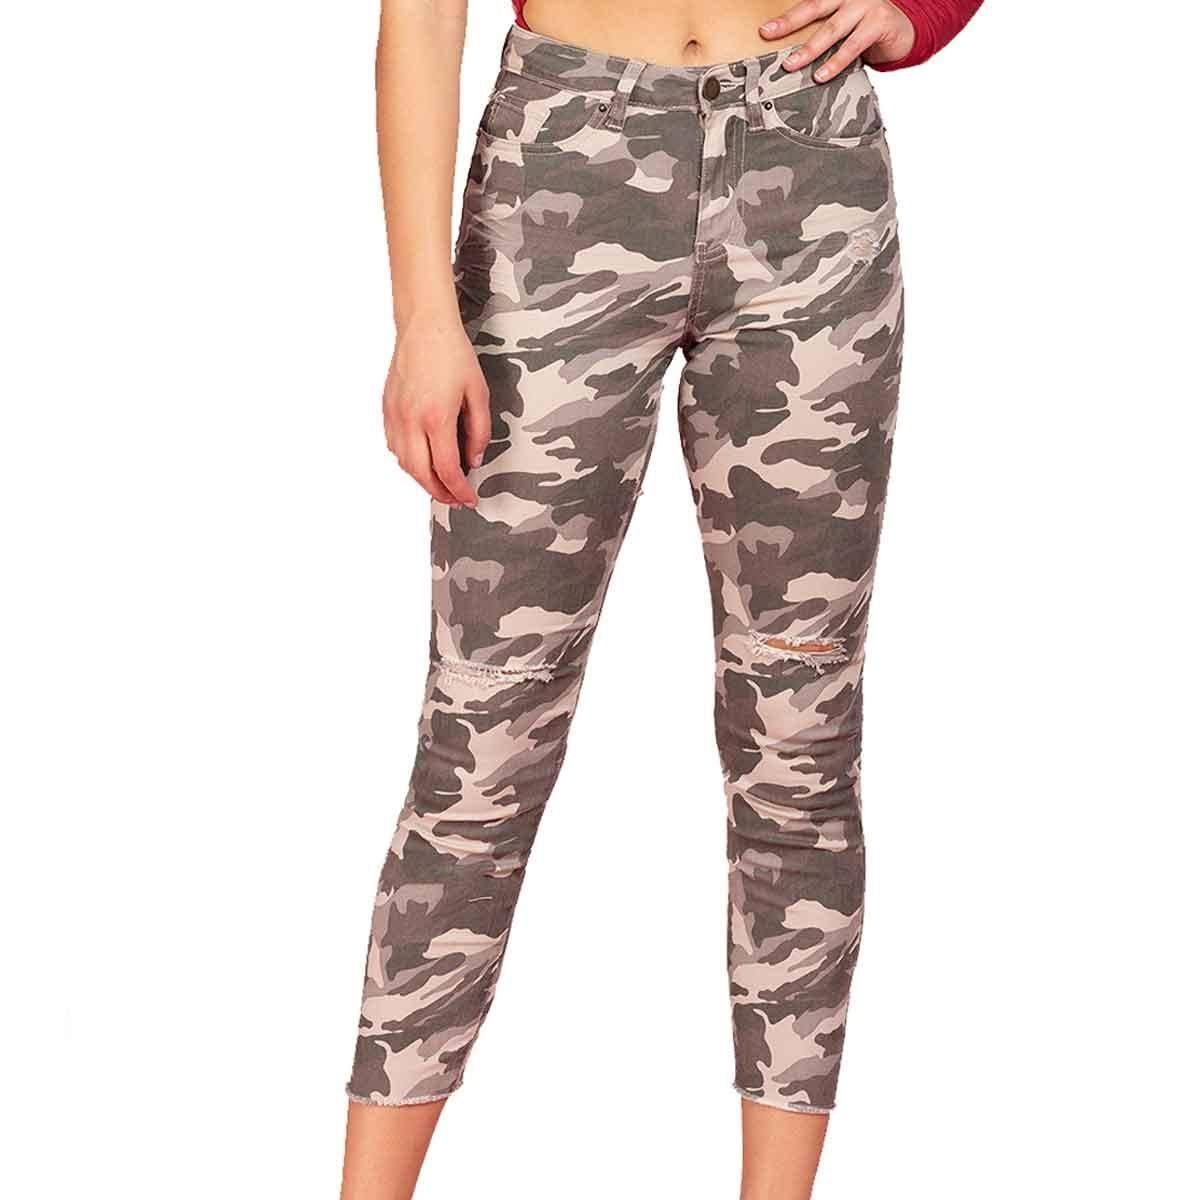 YMI Juniors Mid Rise Camo Ankle Jeans Green 9